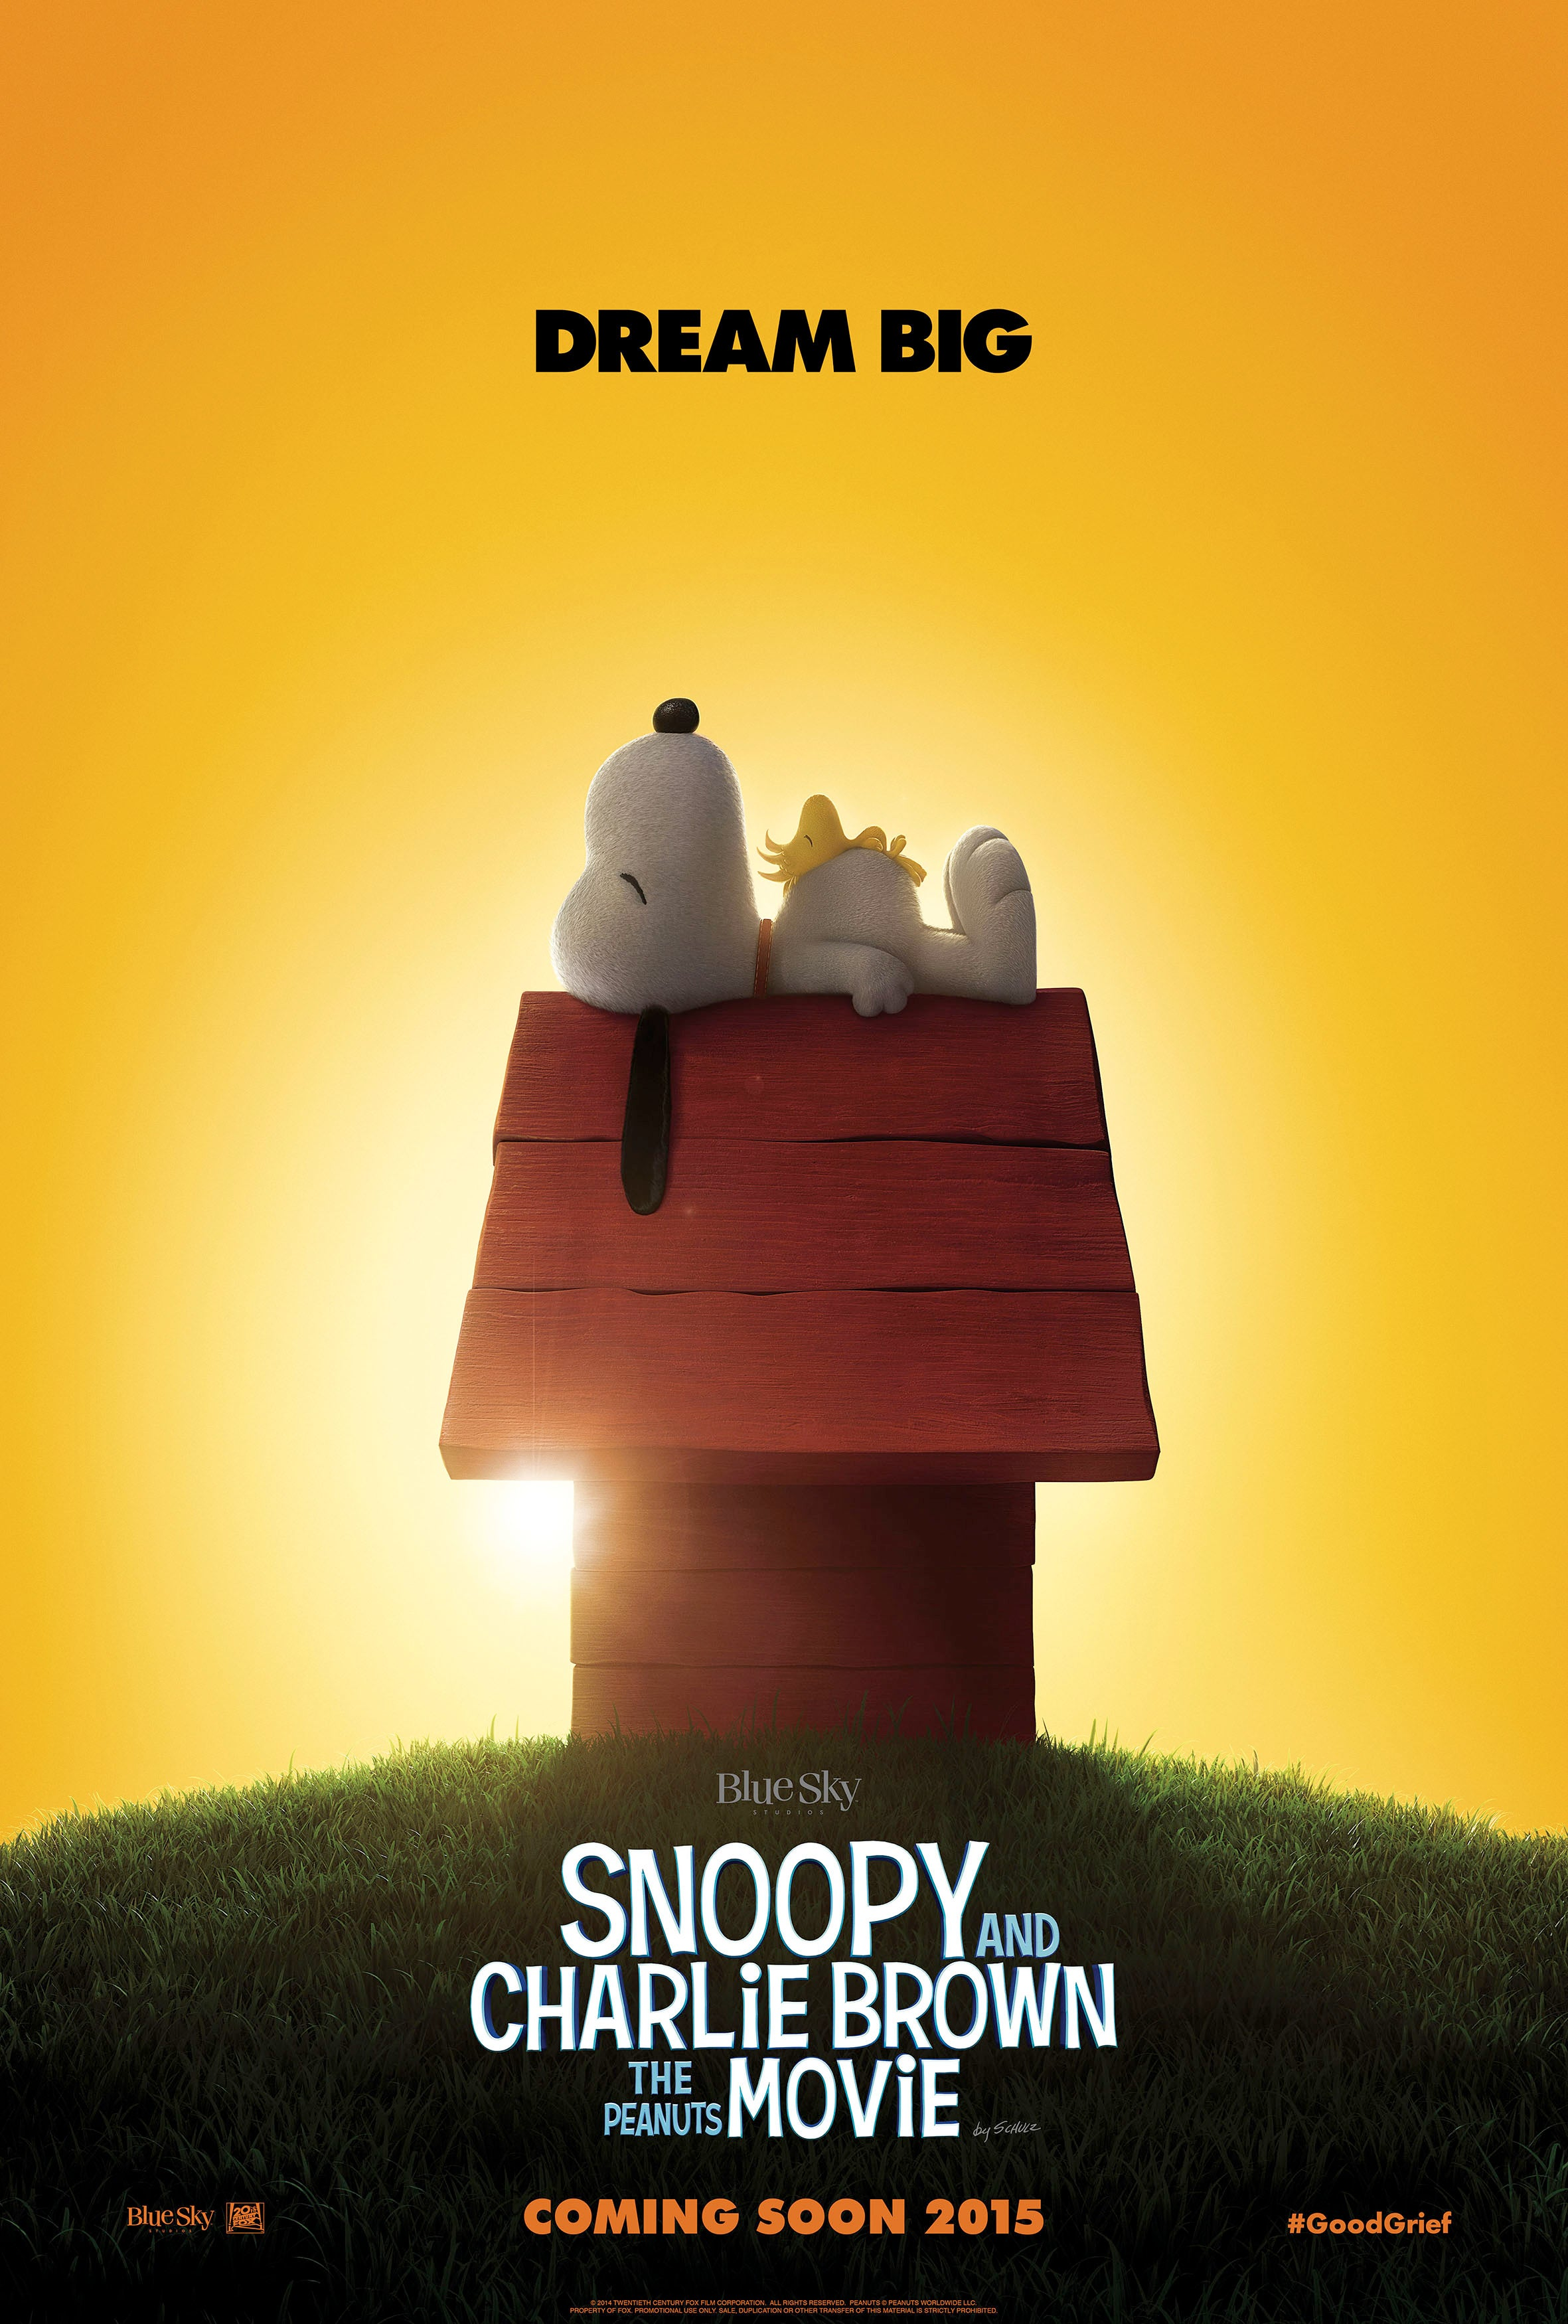 Snoopy looks so good in this movie poster